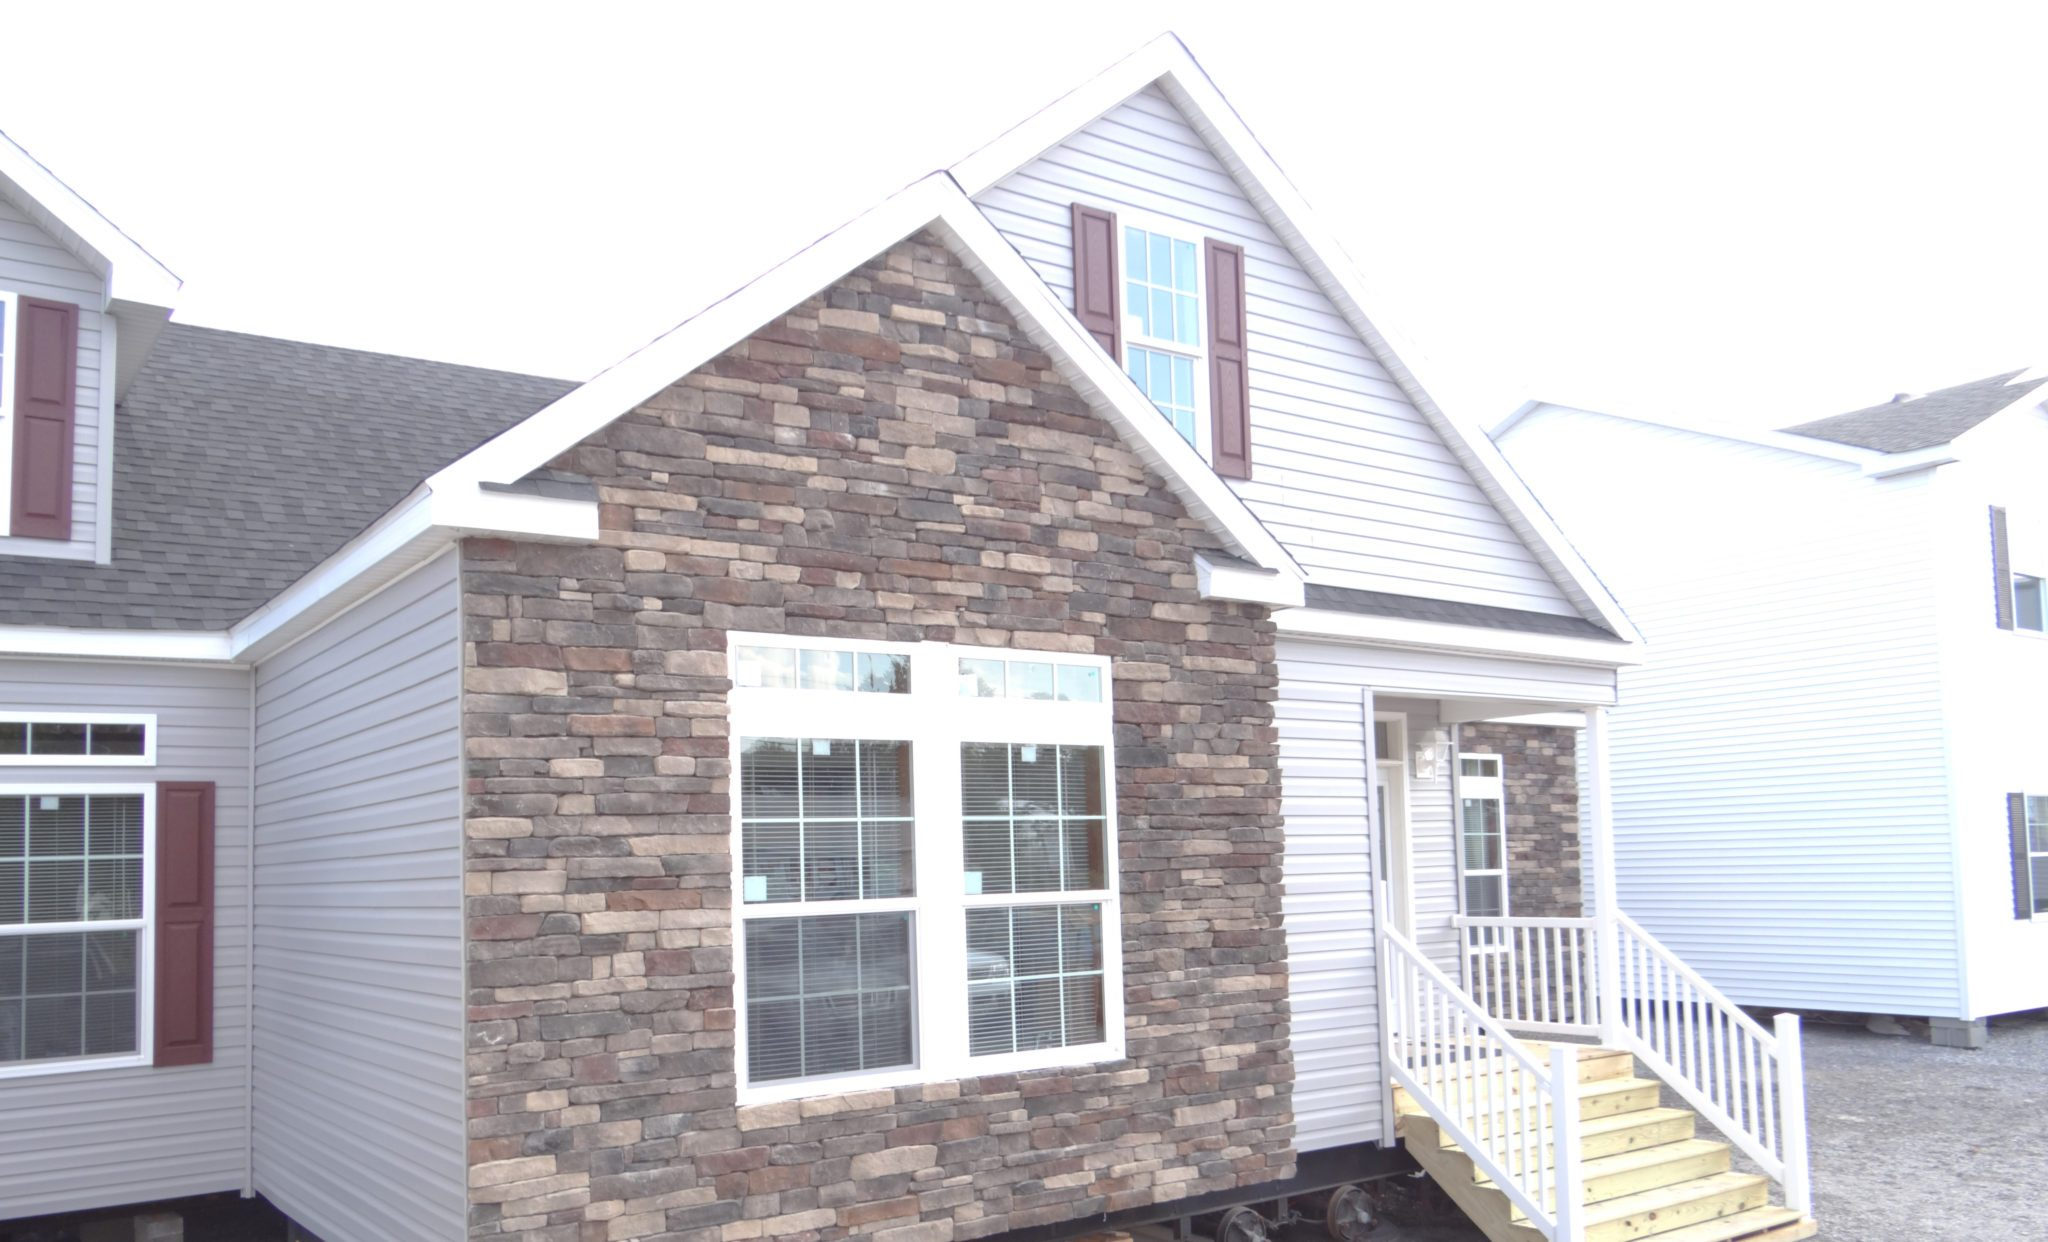 A Stone Or Brick Exterior On Manufactured Or Modular Homes